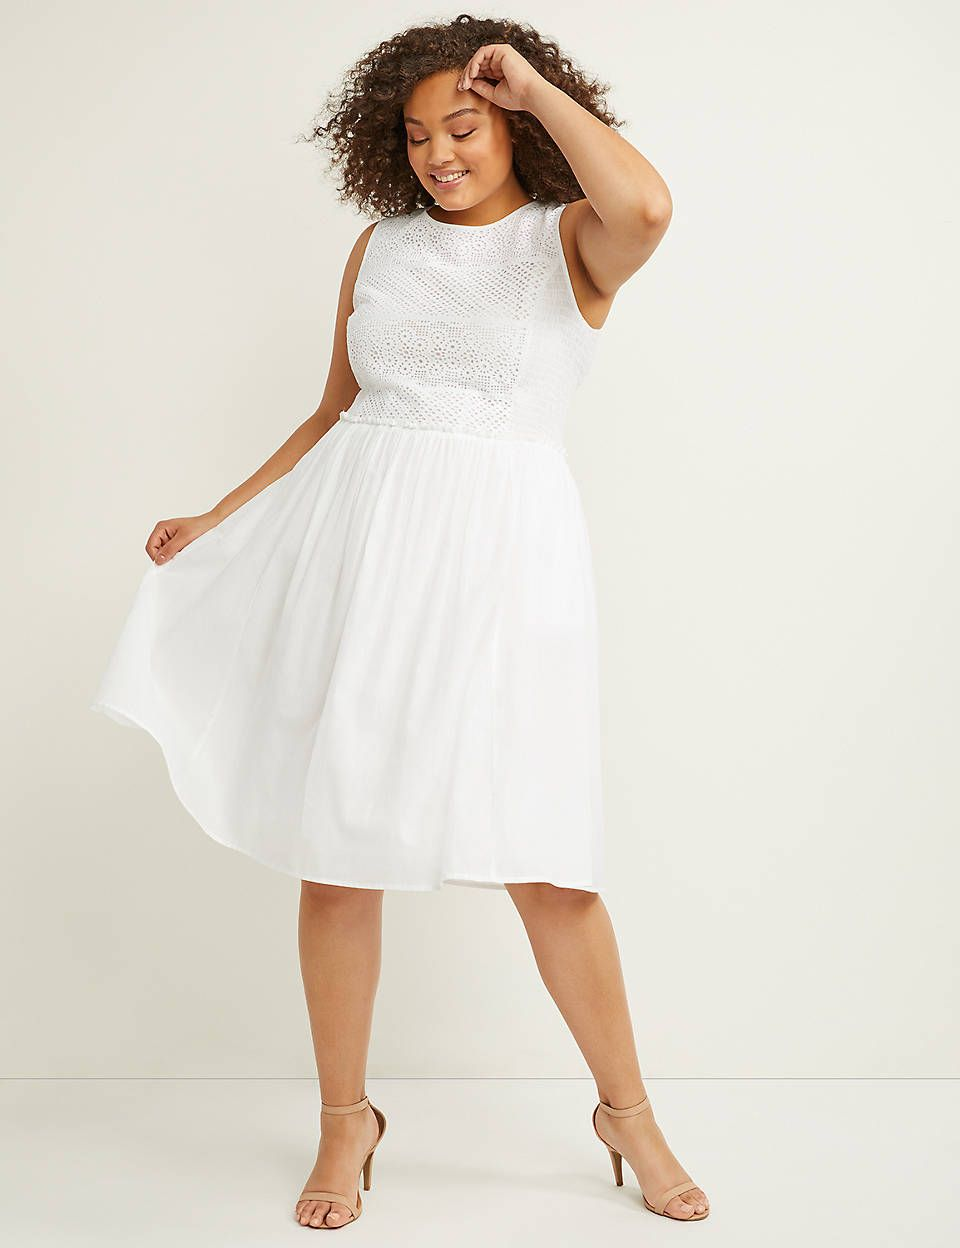 Eyelet Fit Flare Dress With Smocking Fit Flare Dress Flare Dress Military Ball Dresses [ 1248 x 960 Pixel ]